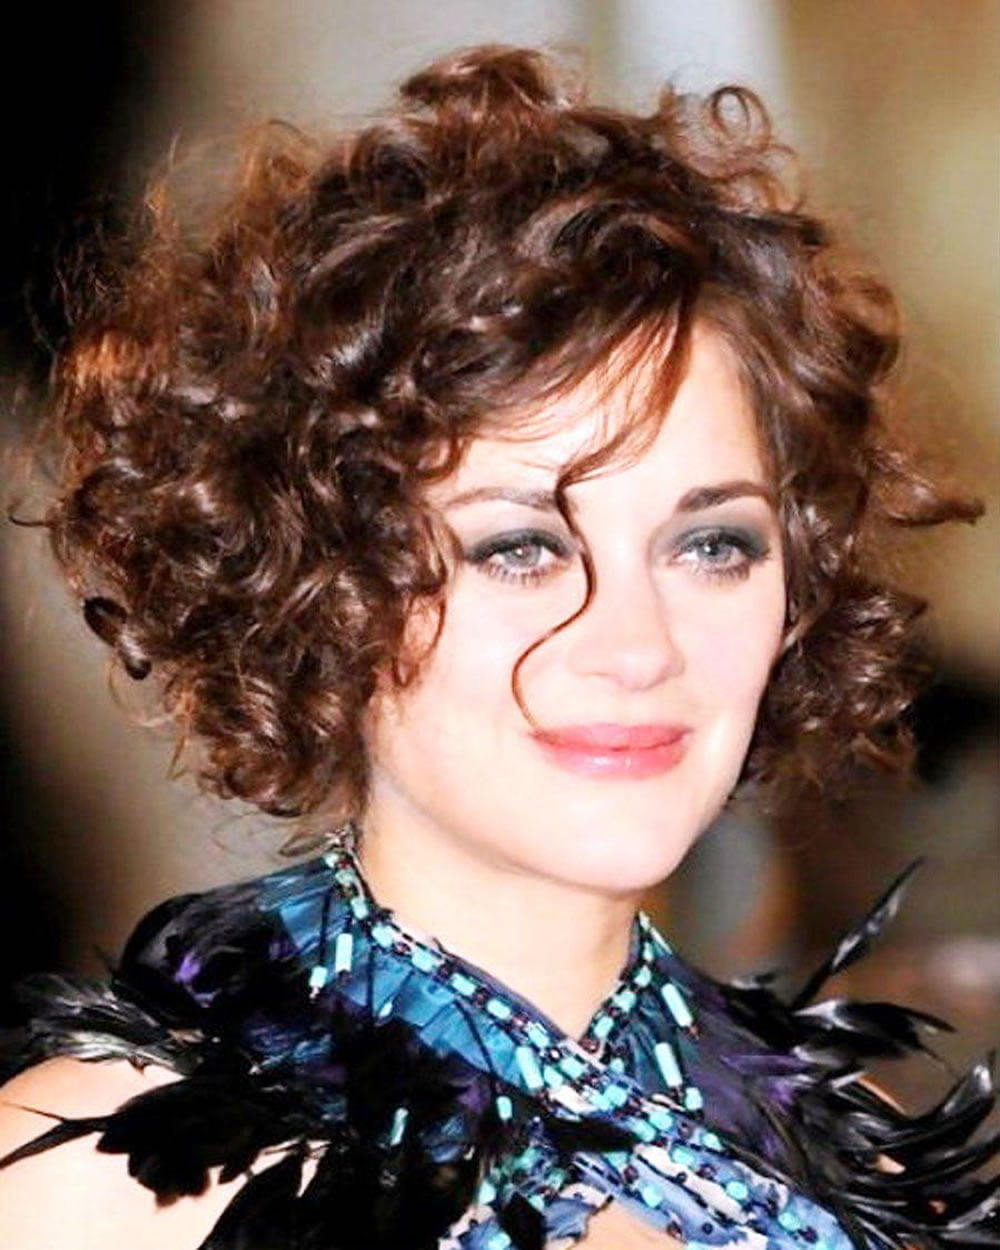 popular hairstyles for curly 22 popular hairstyles for curly hair pixie bob 22